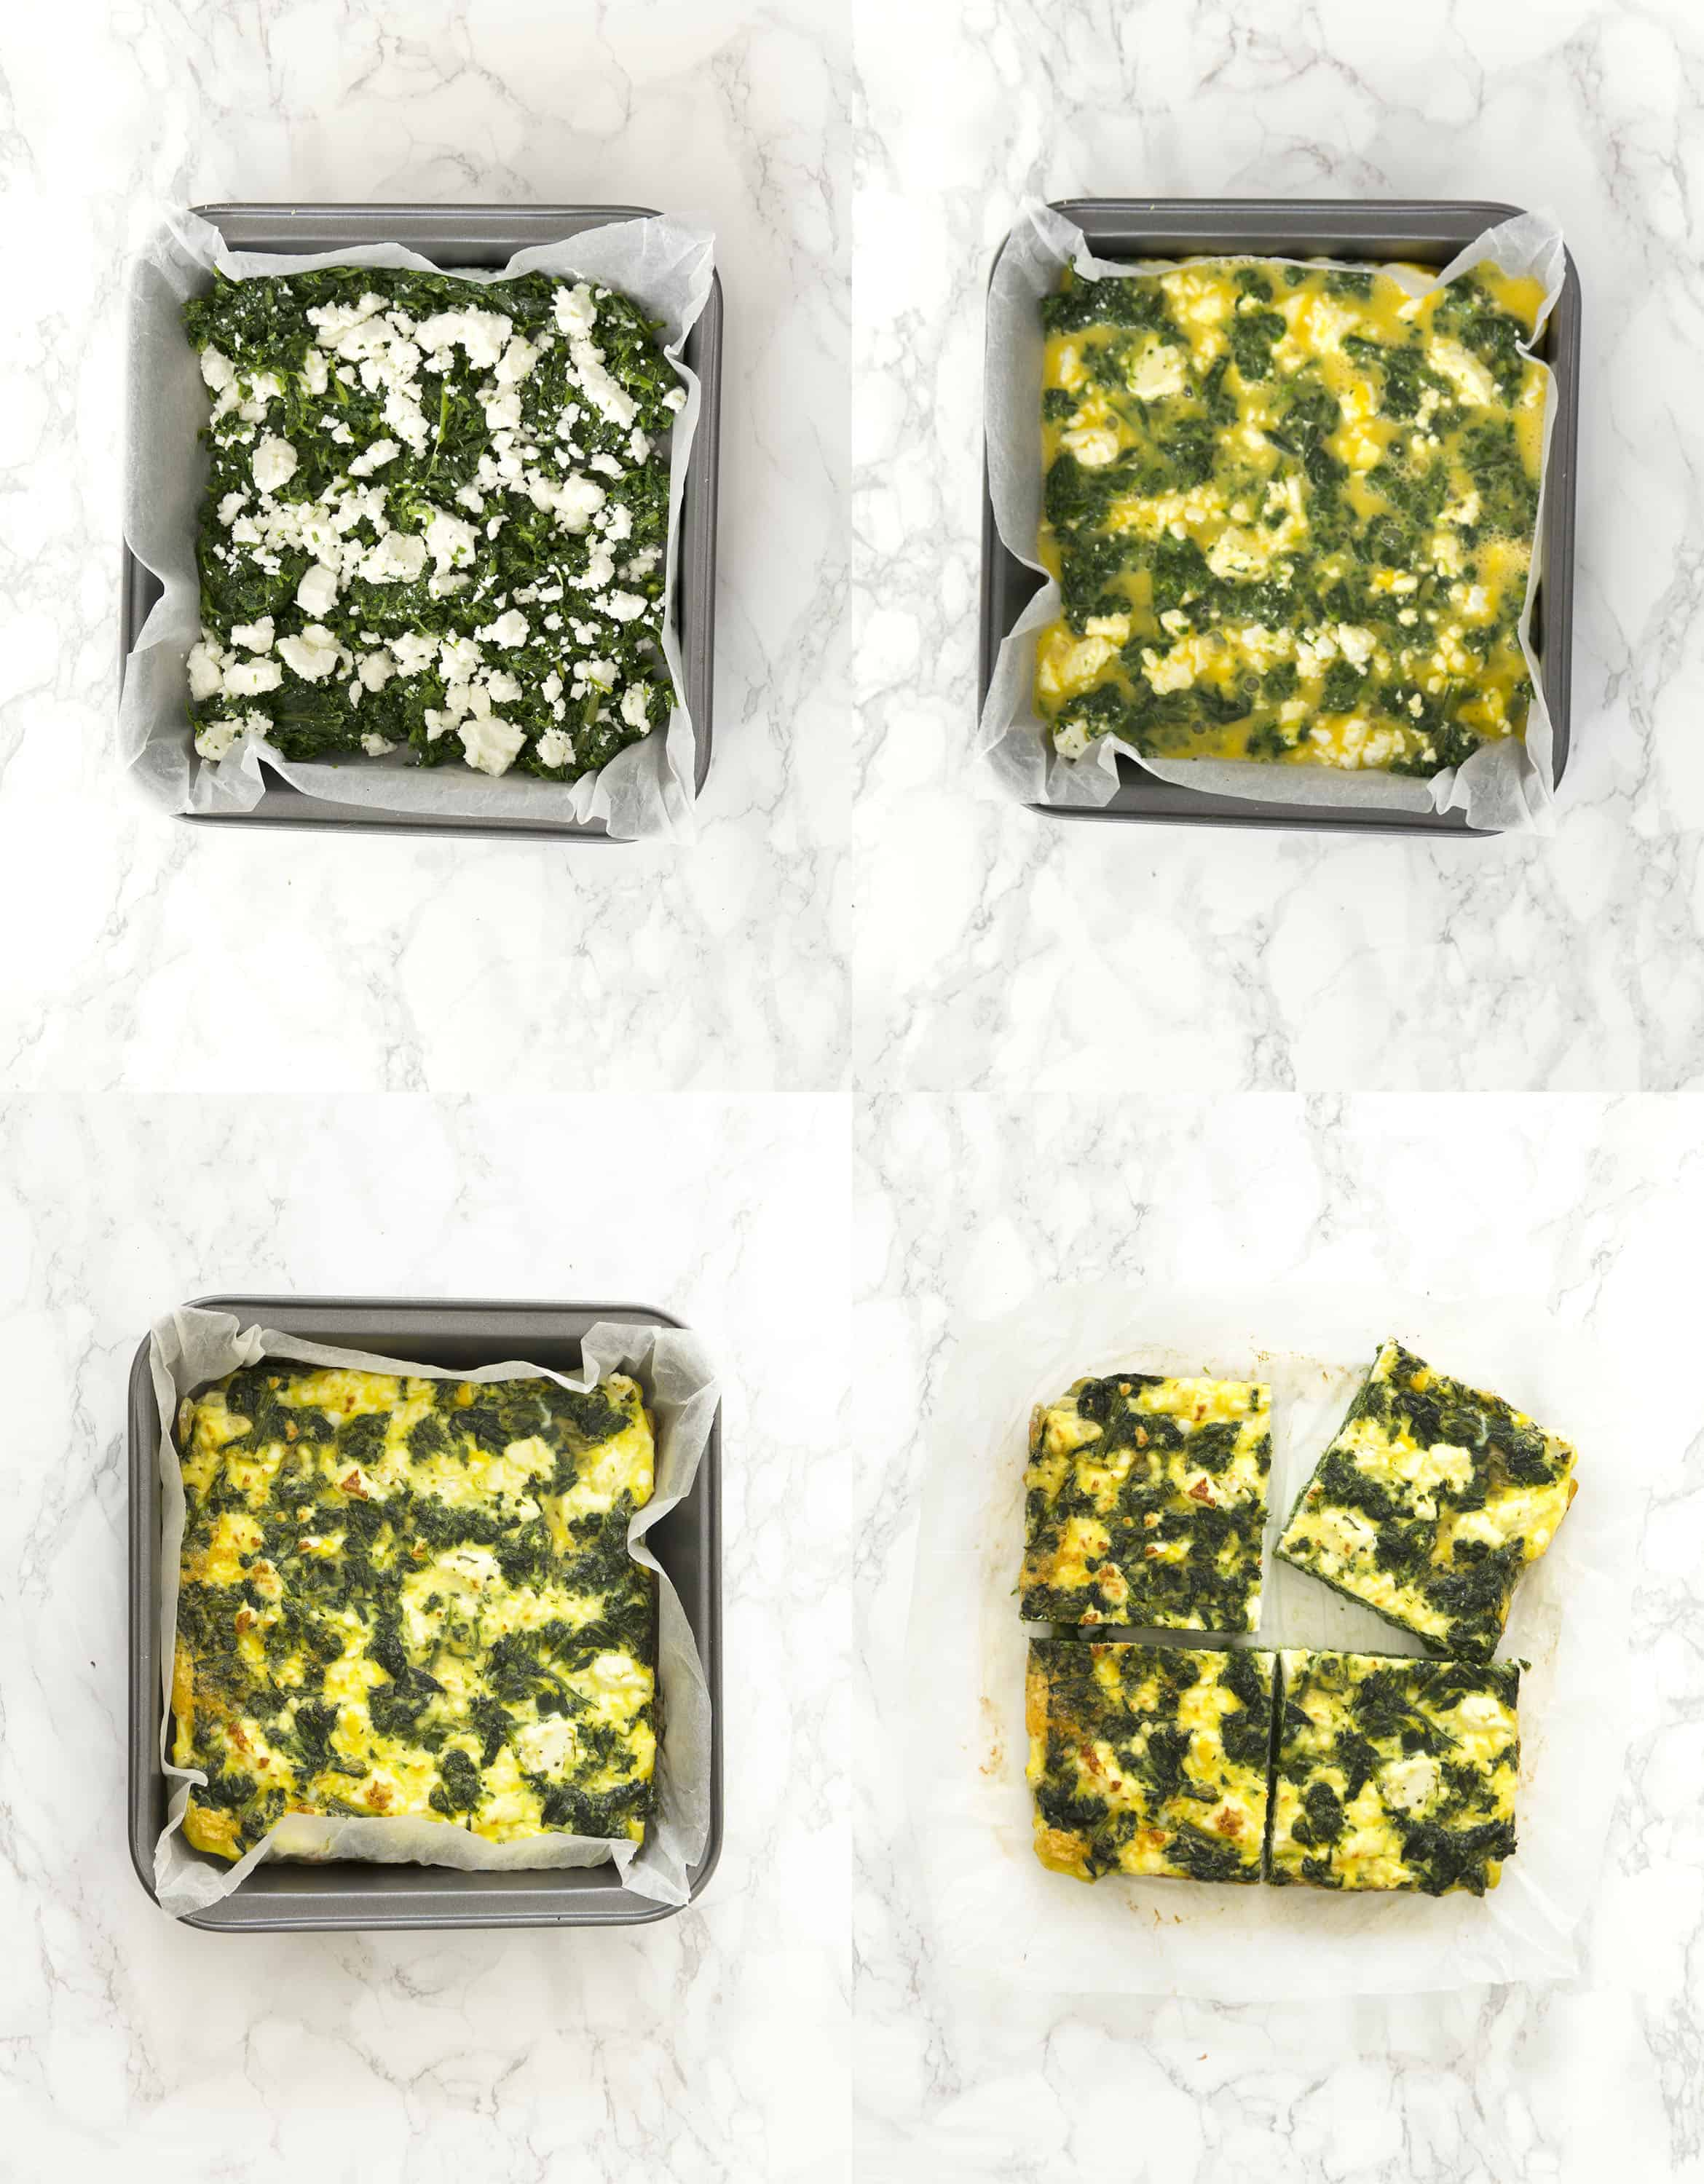 For different images show the baked frittata in a pan during different steps of baking.